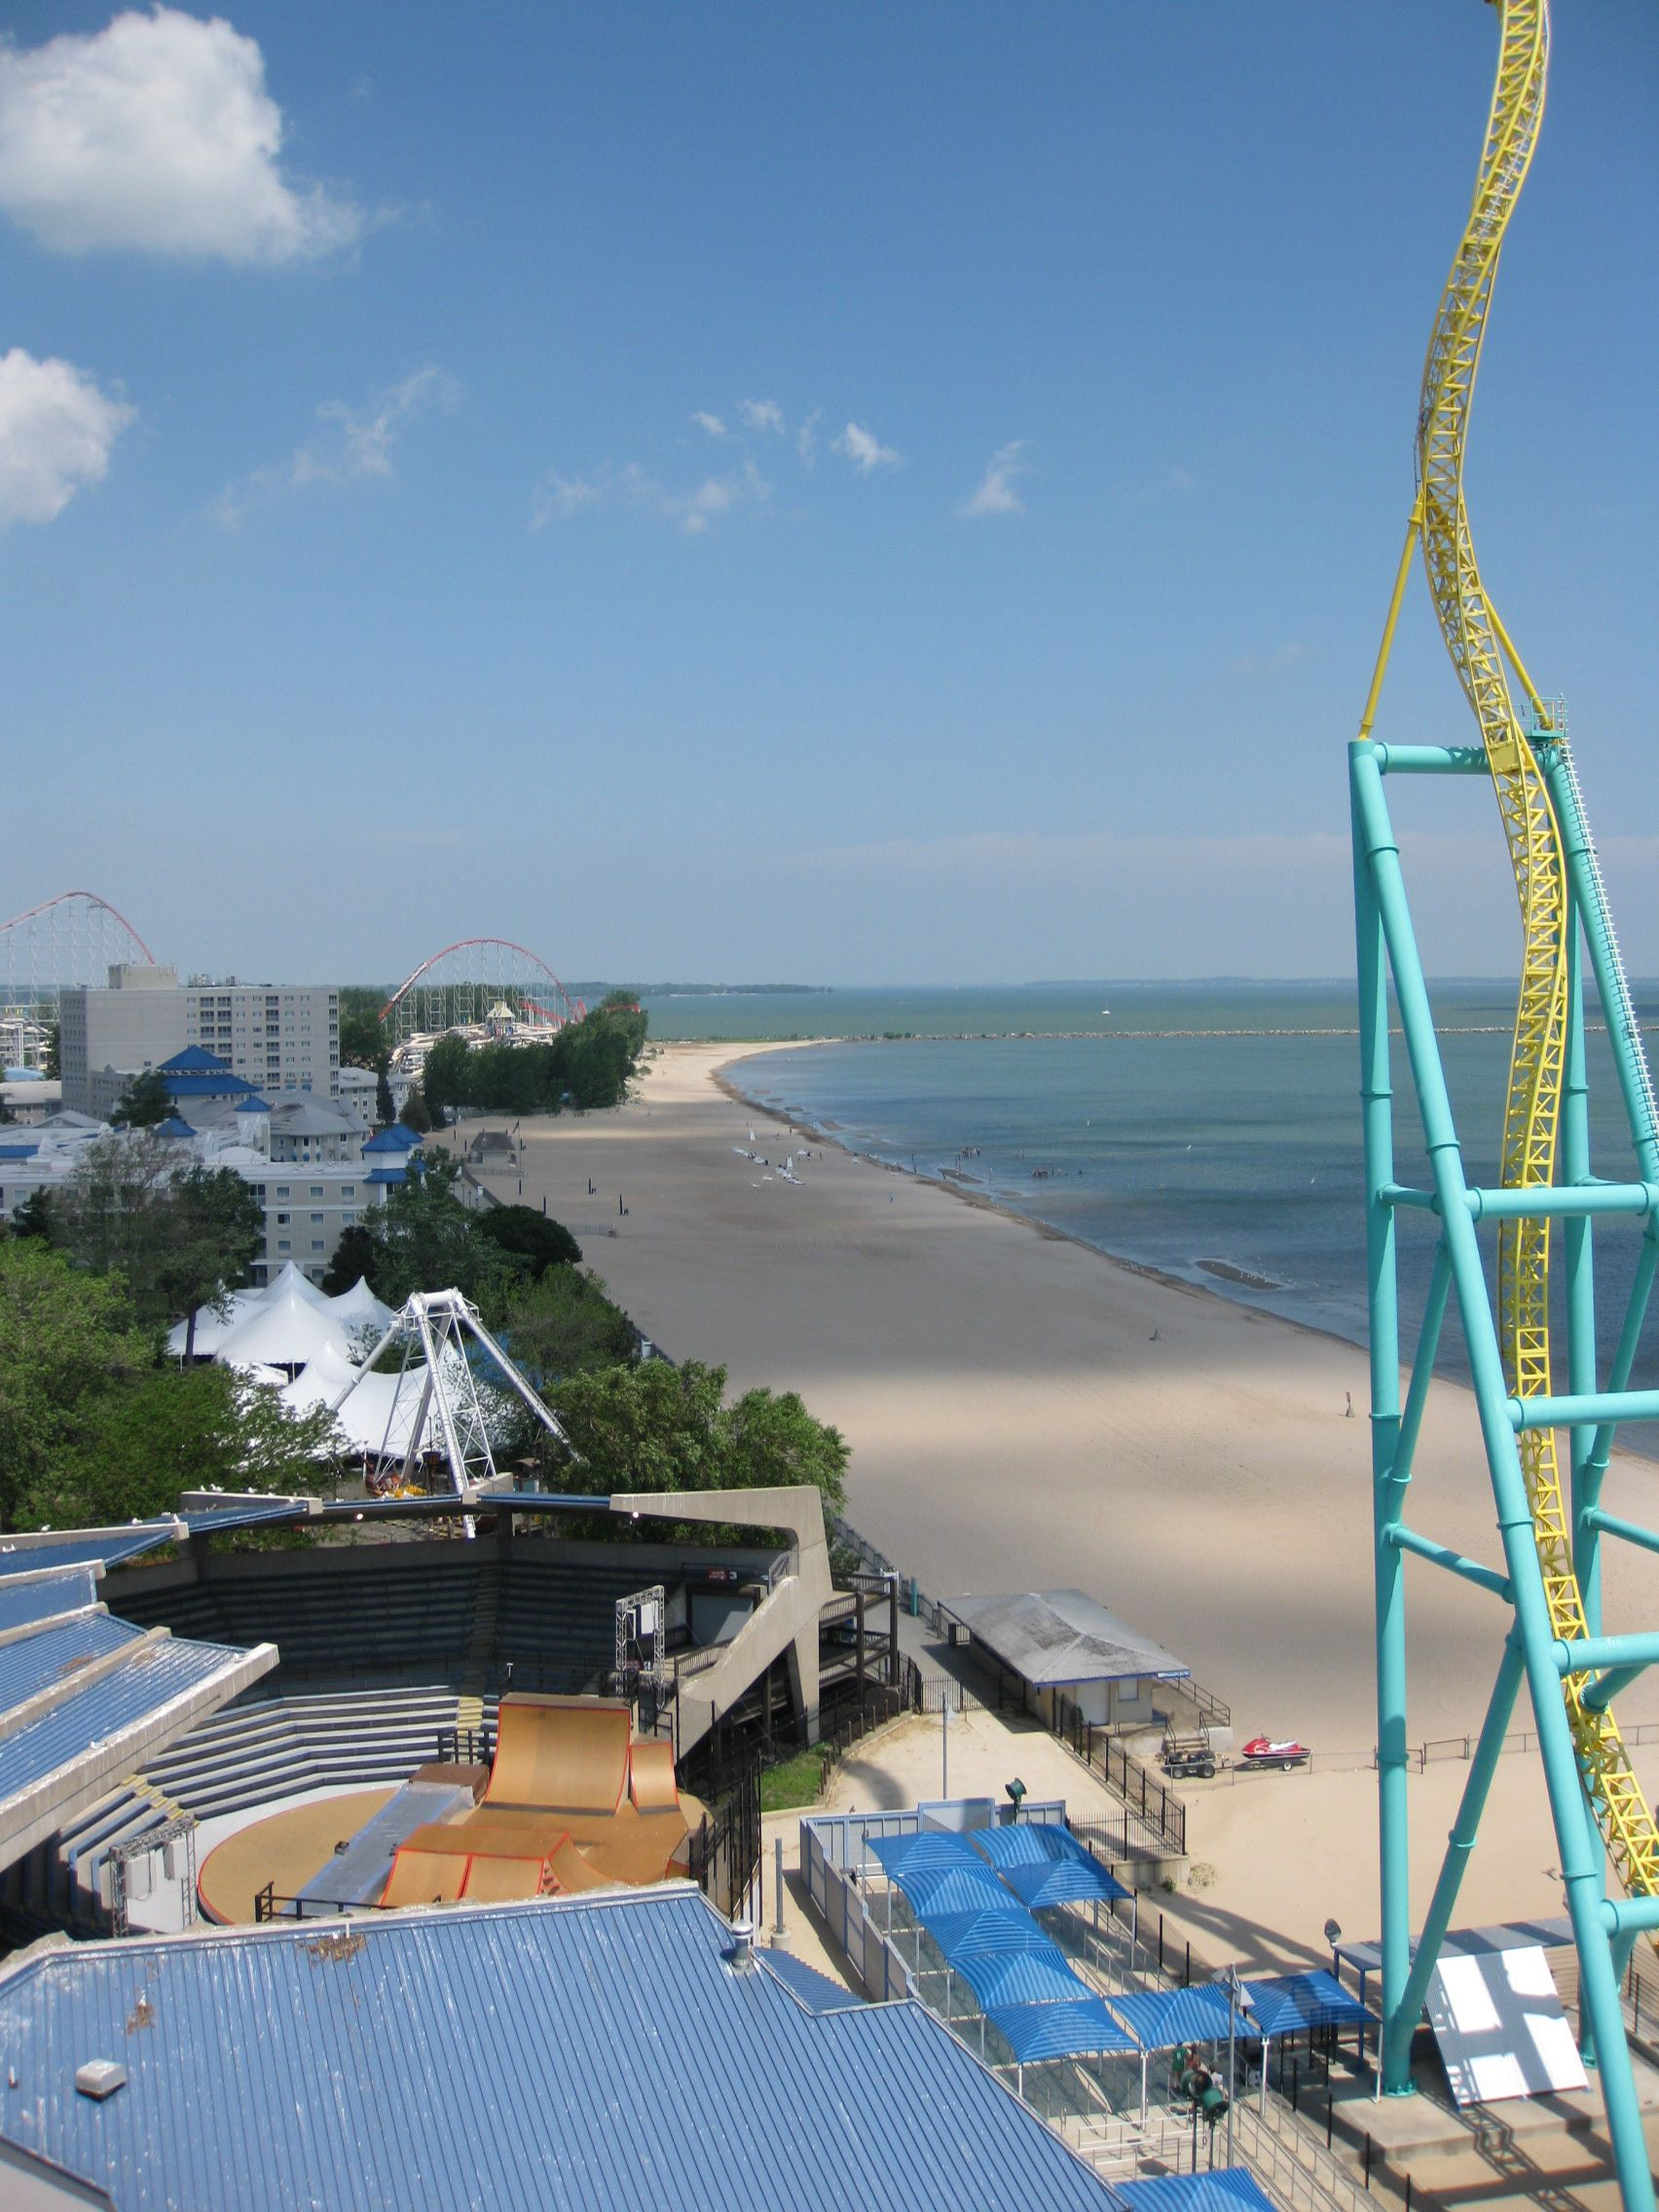 Hotel Breakers Cedar Point Beach Click Here To See More Amazing Hotels